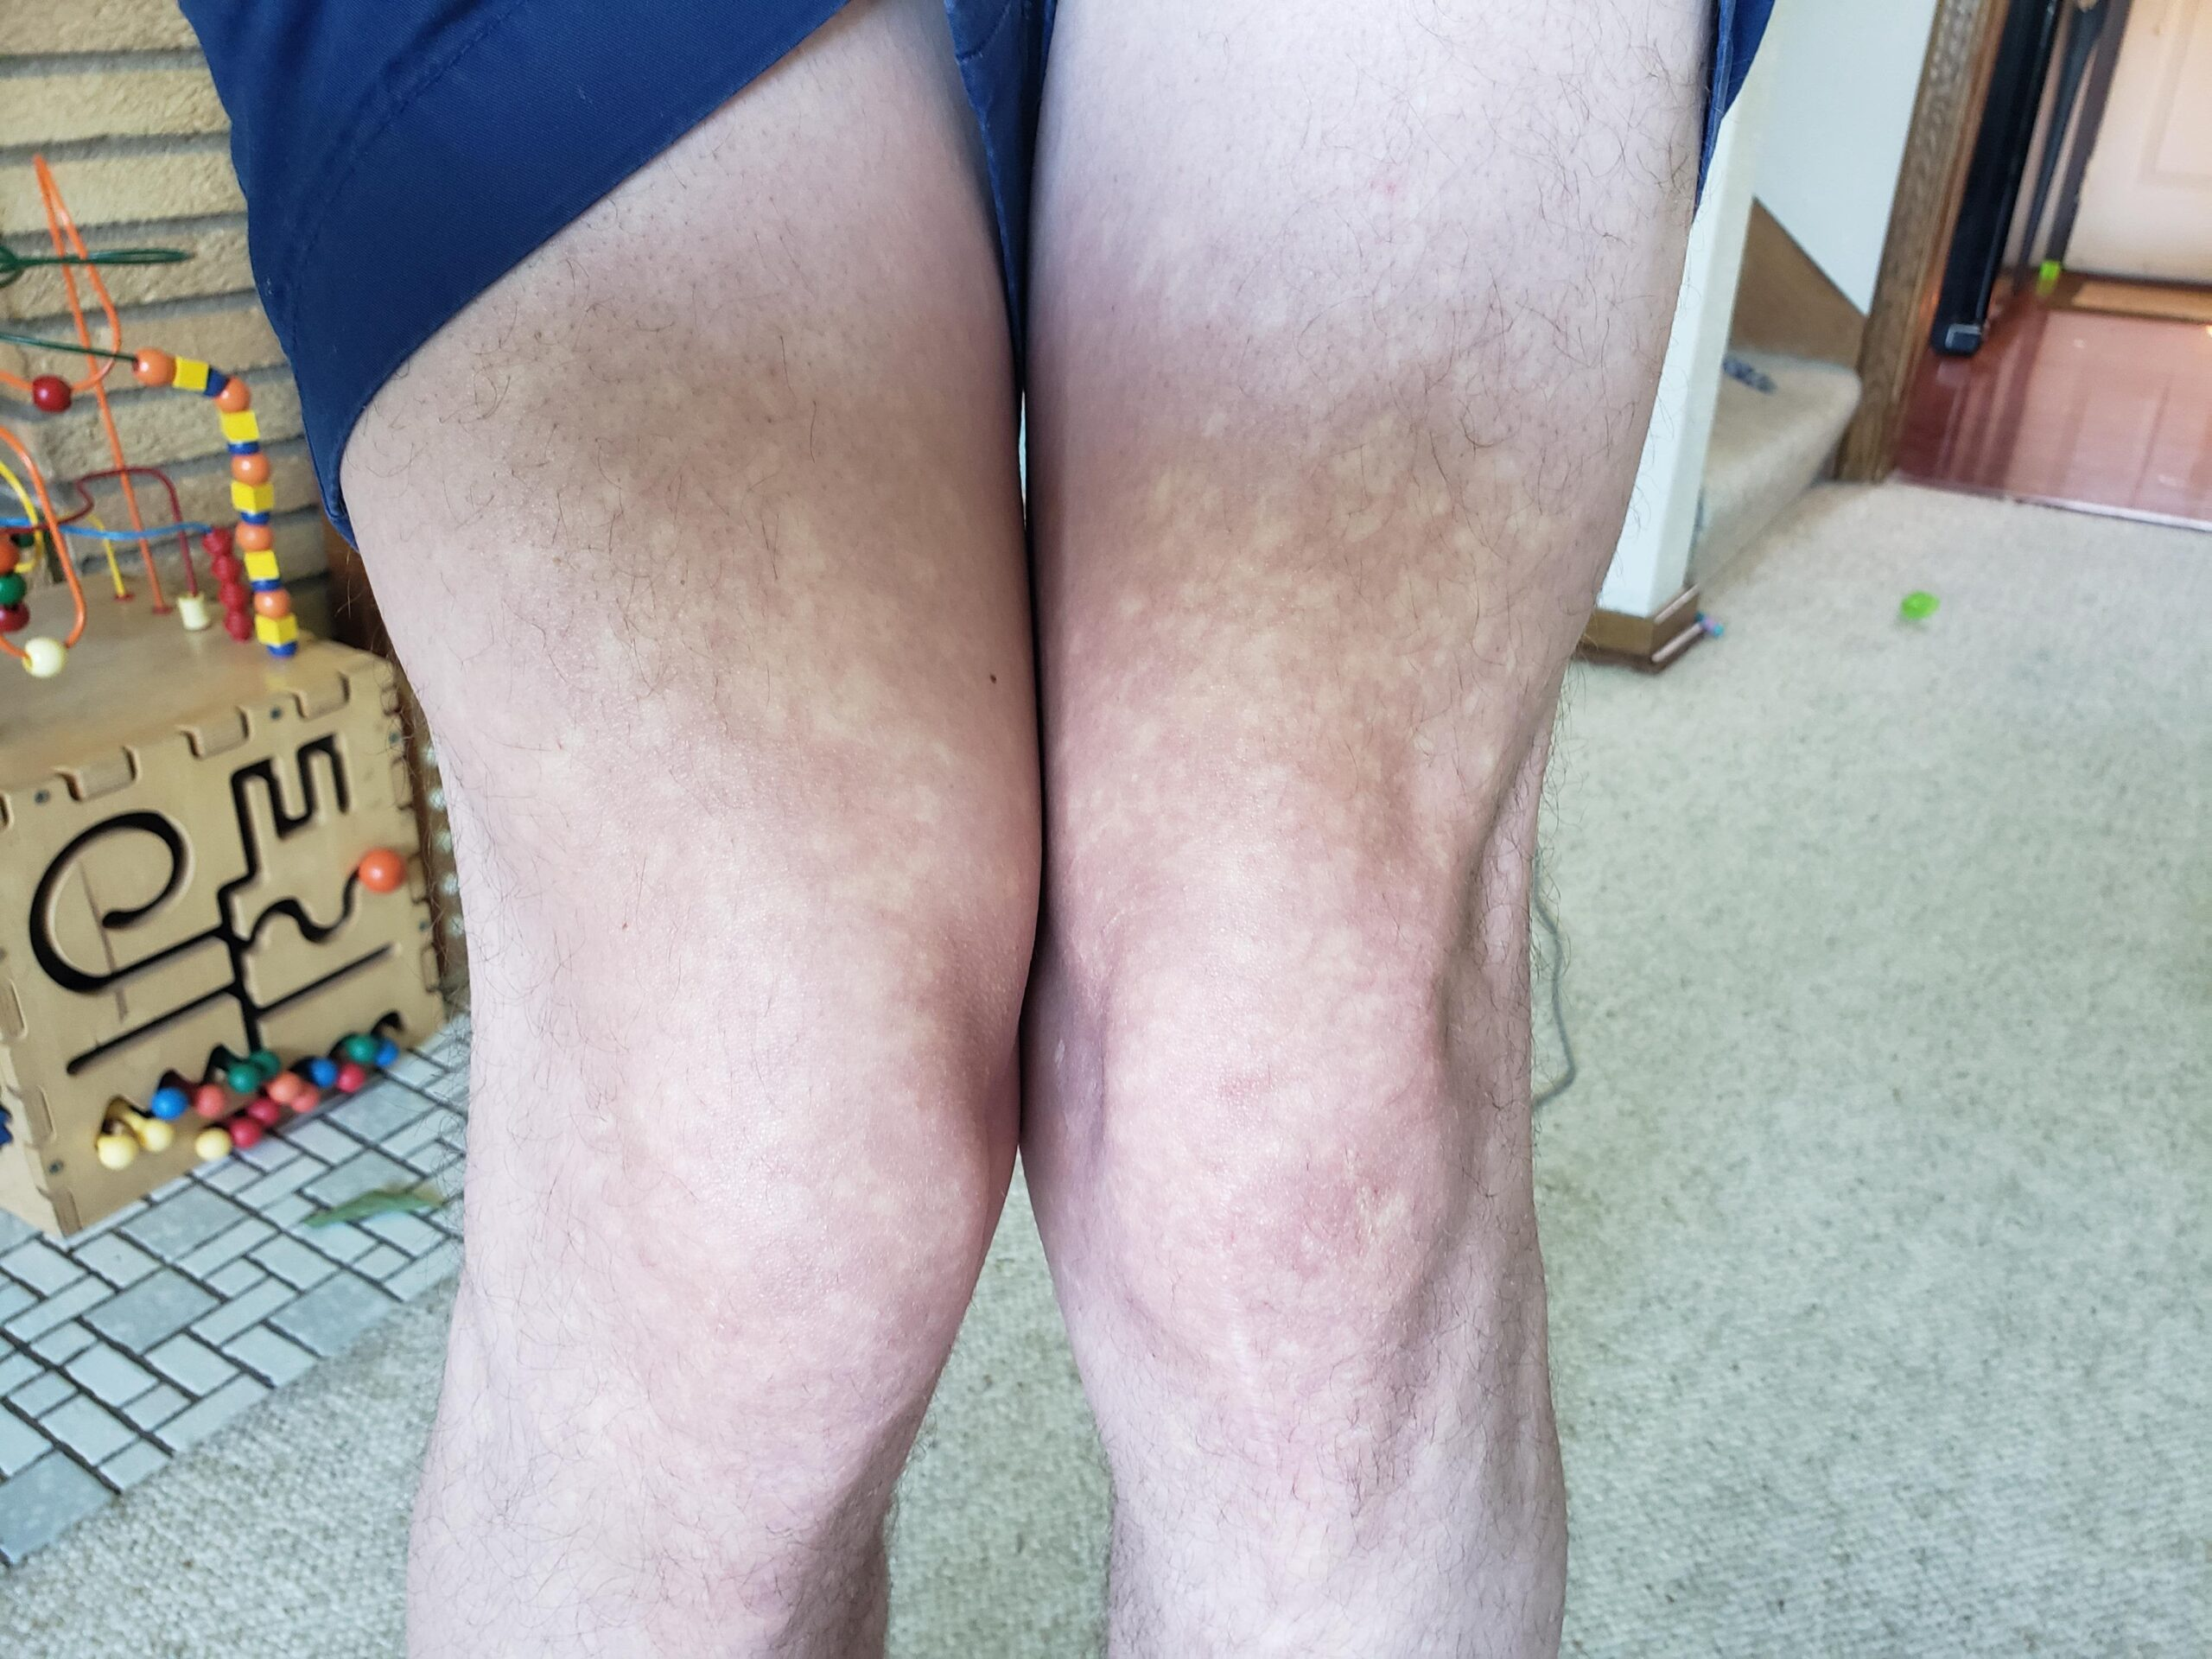 [MISC]I have been getting white blotches around my knees and arms.